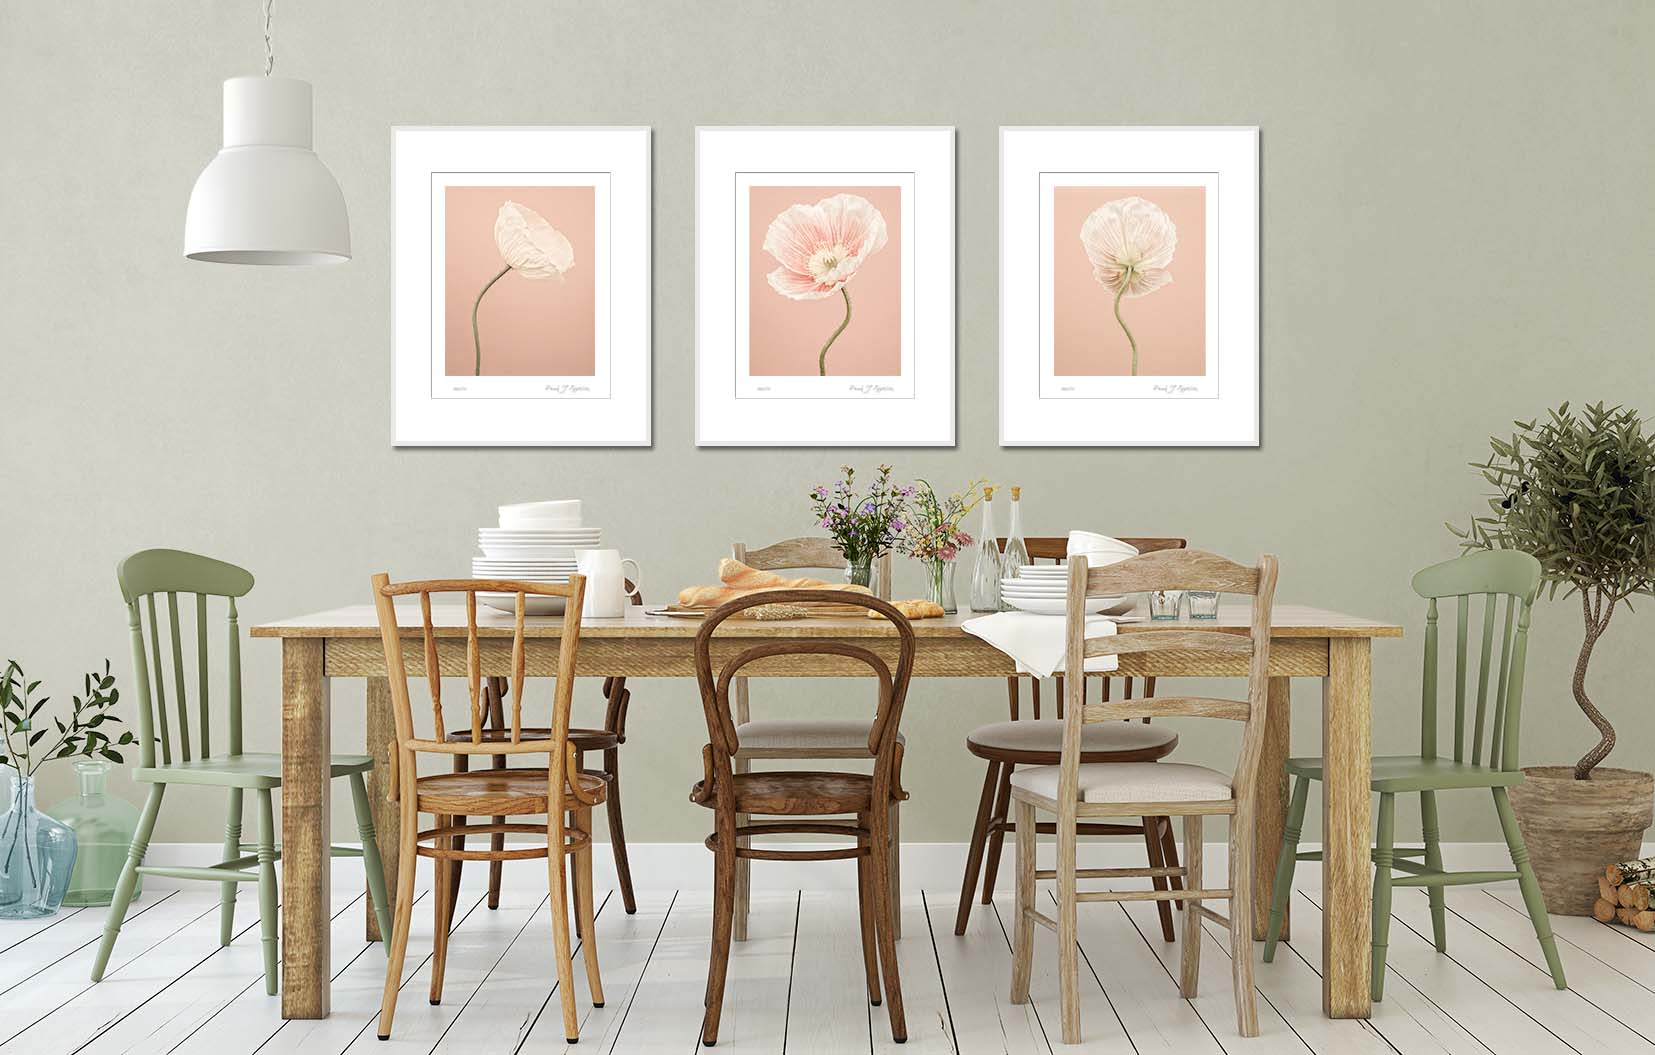 Peach coloured Icelandic Poppies in a dining room setting. Limited edition floral prints by fine art photographer Paul Coghlin.